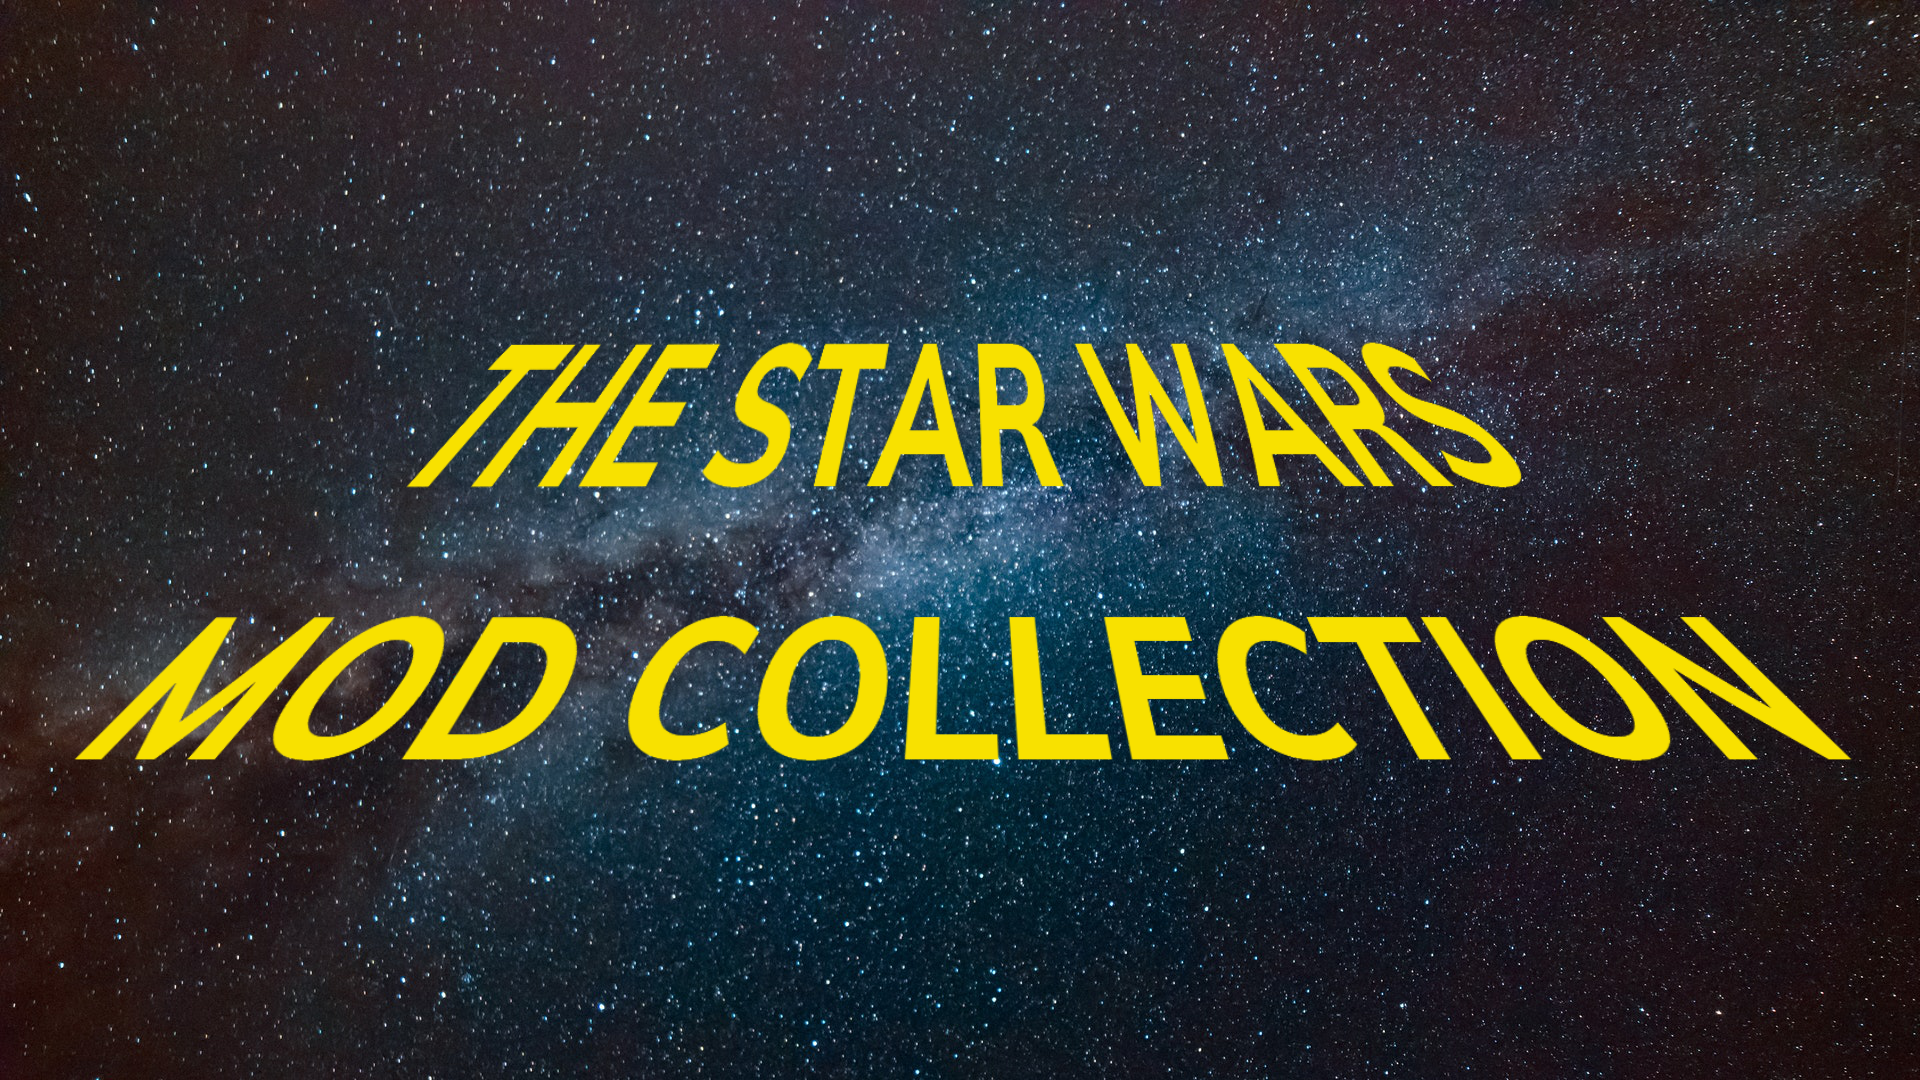 The Star Wars Mod Collection IMG.png